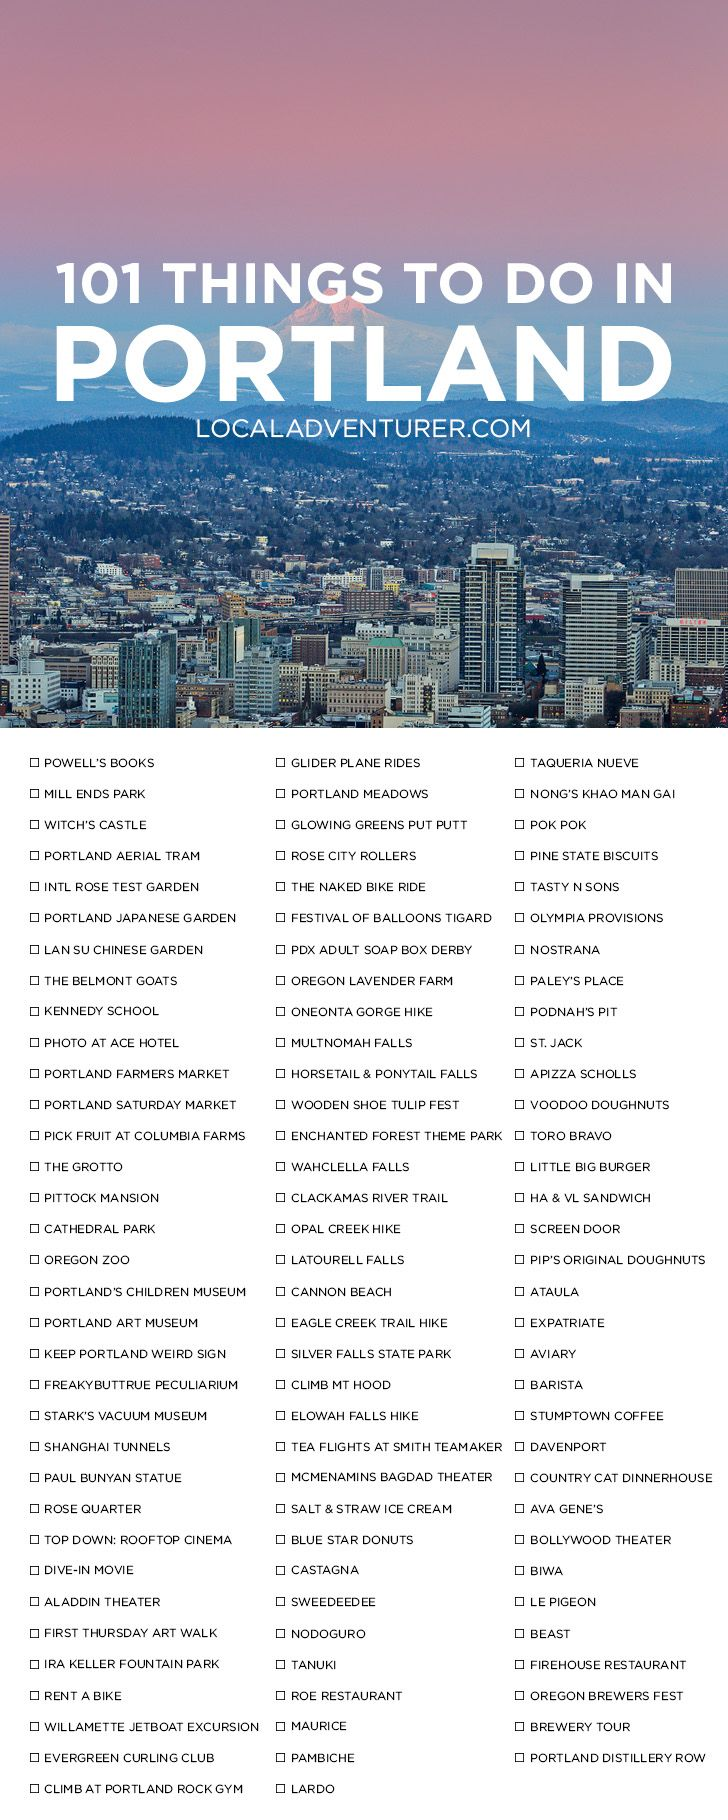 101 Things to Do in Portland Oregon { click through to get printable version } - the Ultimate Portland Bucket List - from the touristy spots everyone has to do at least once to the spots a little more off the beaten path. // localadventurer.com